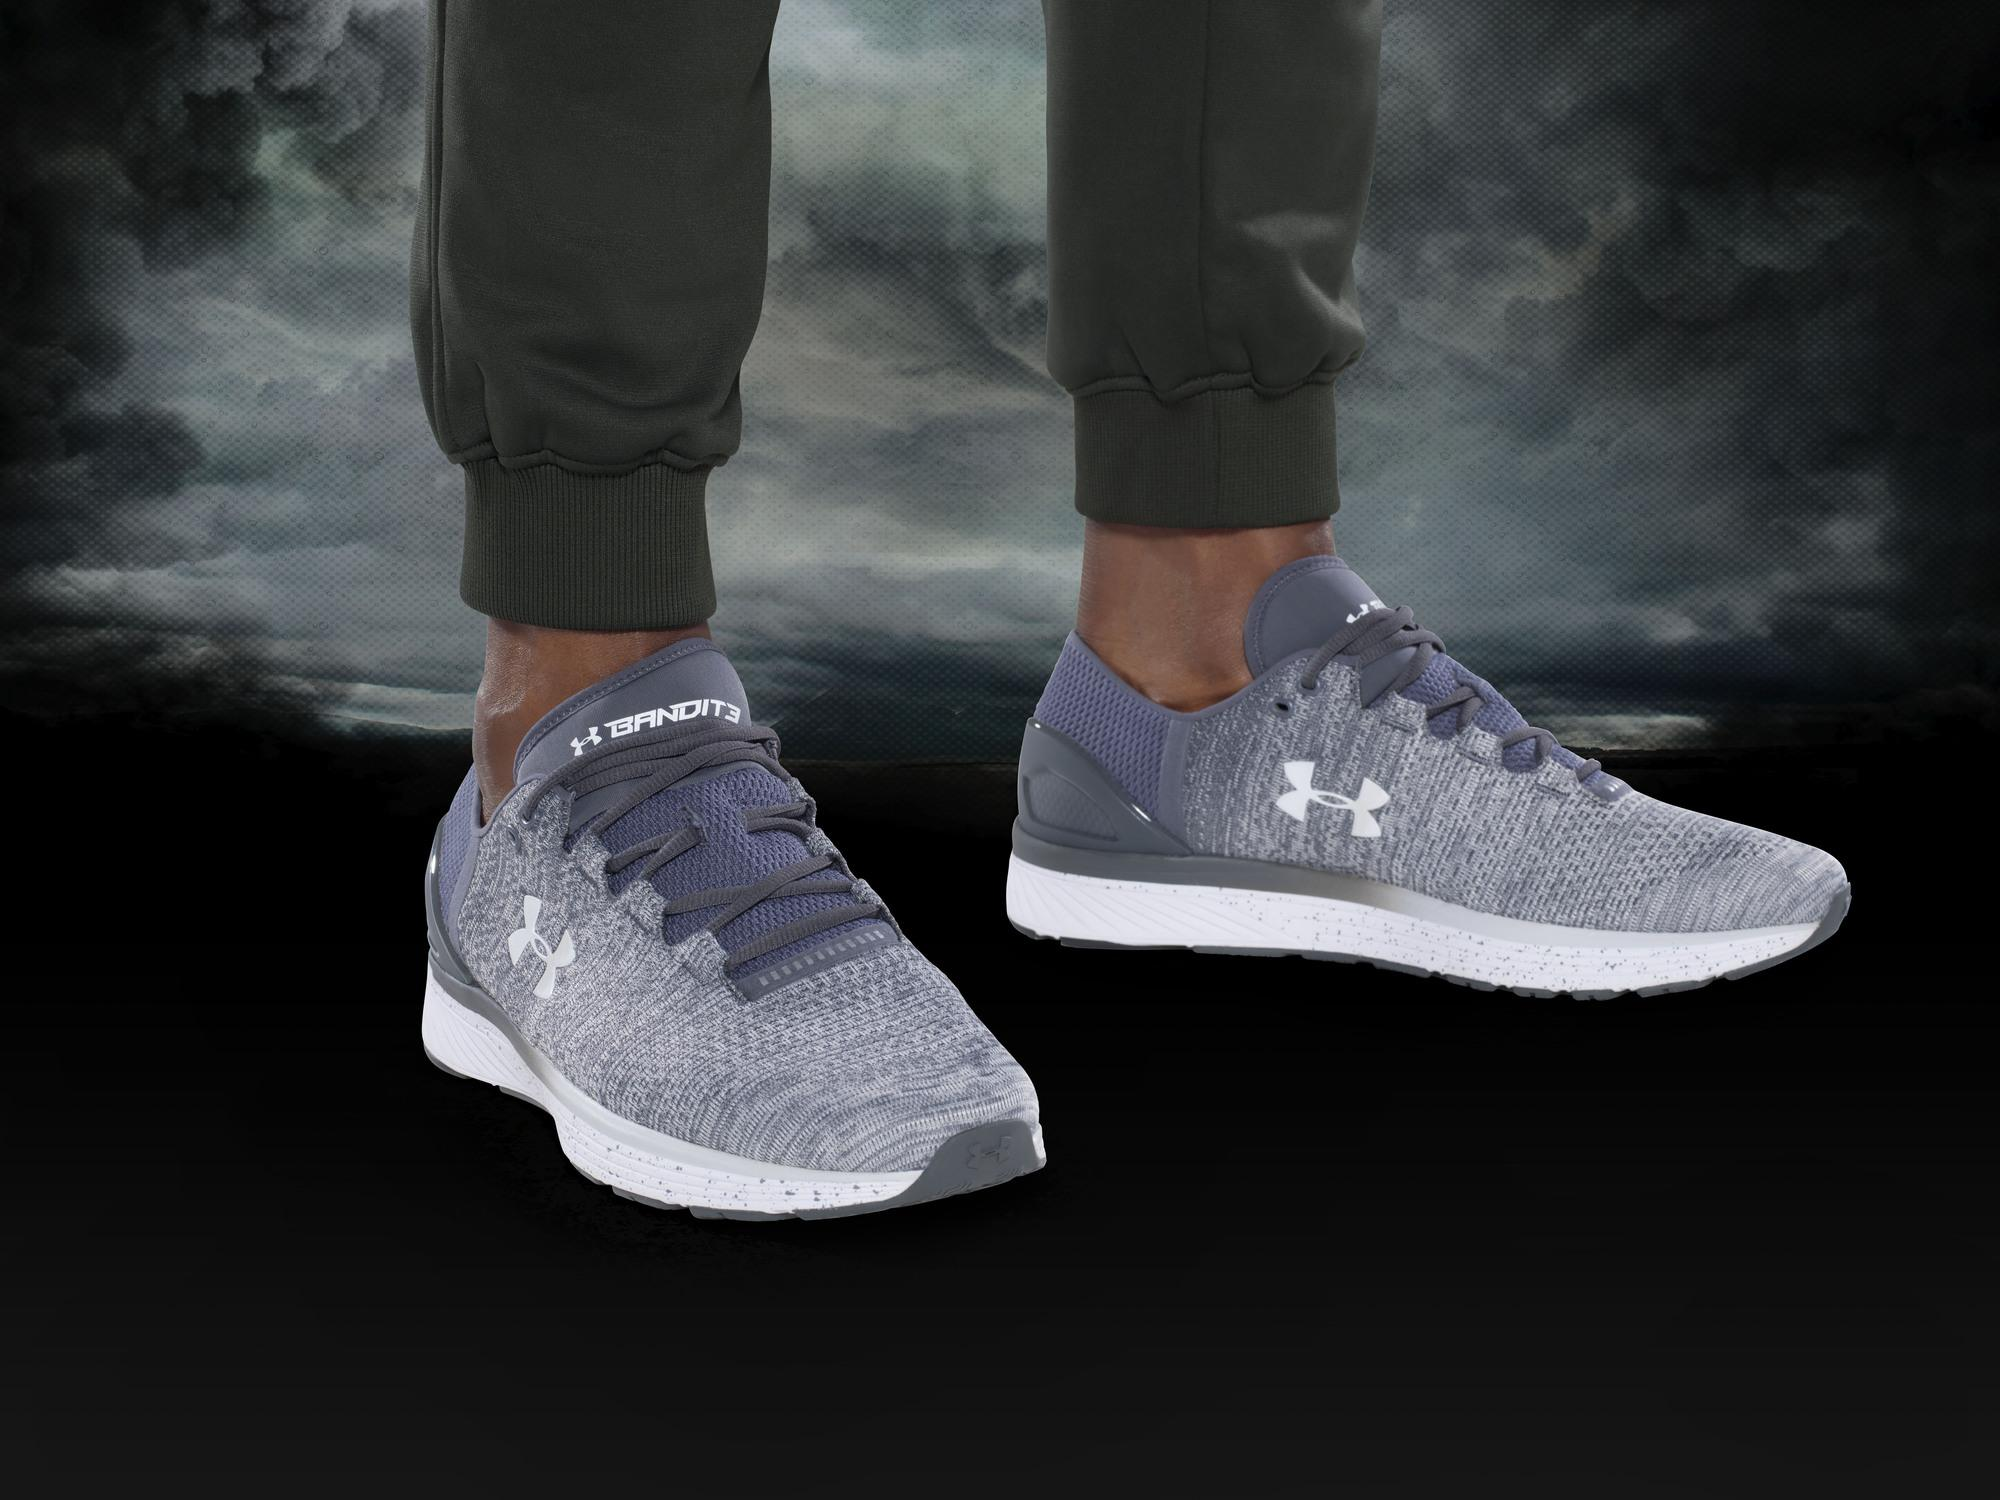 grey trainers and olive green under armour sportswear on a stormy background